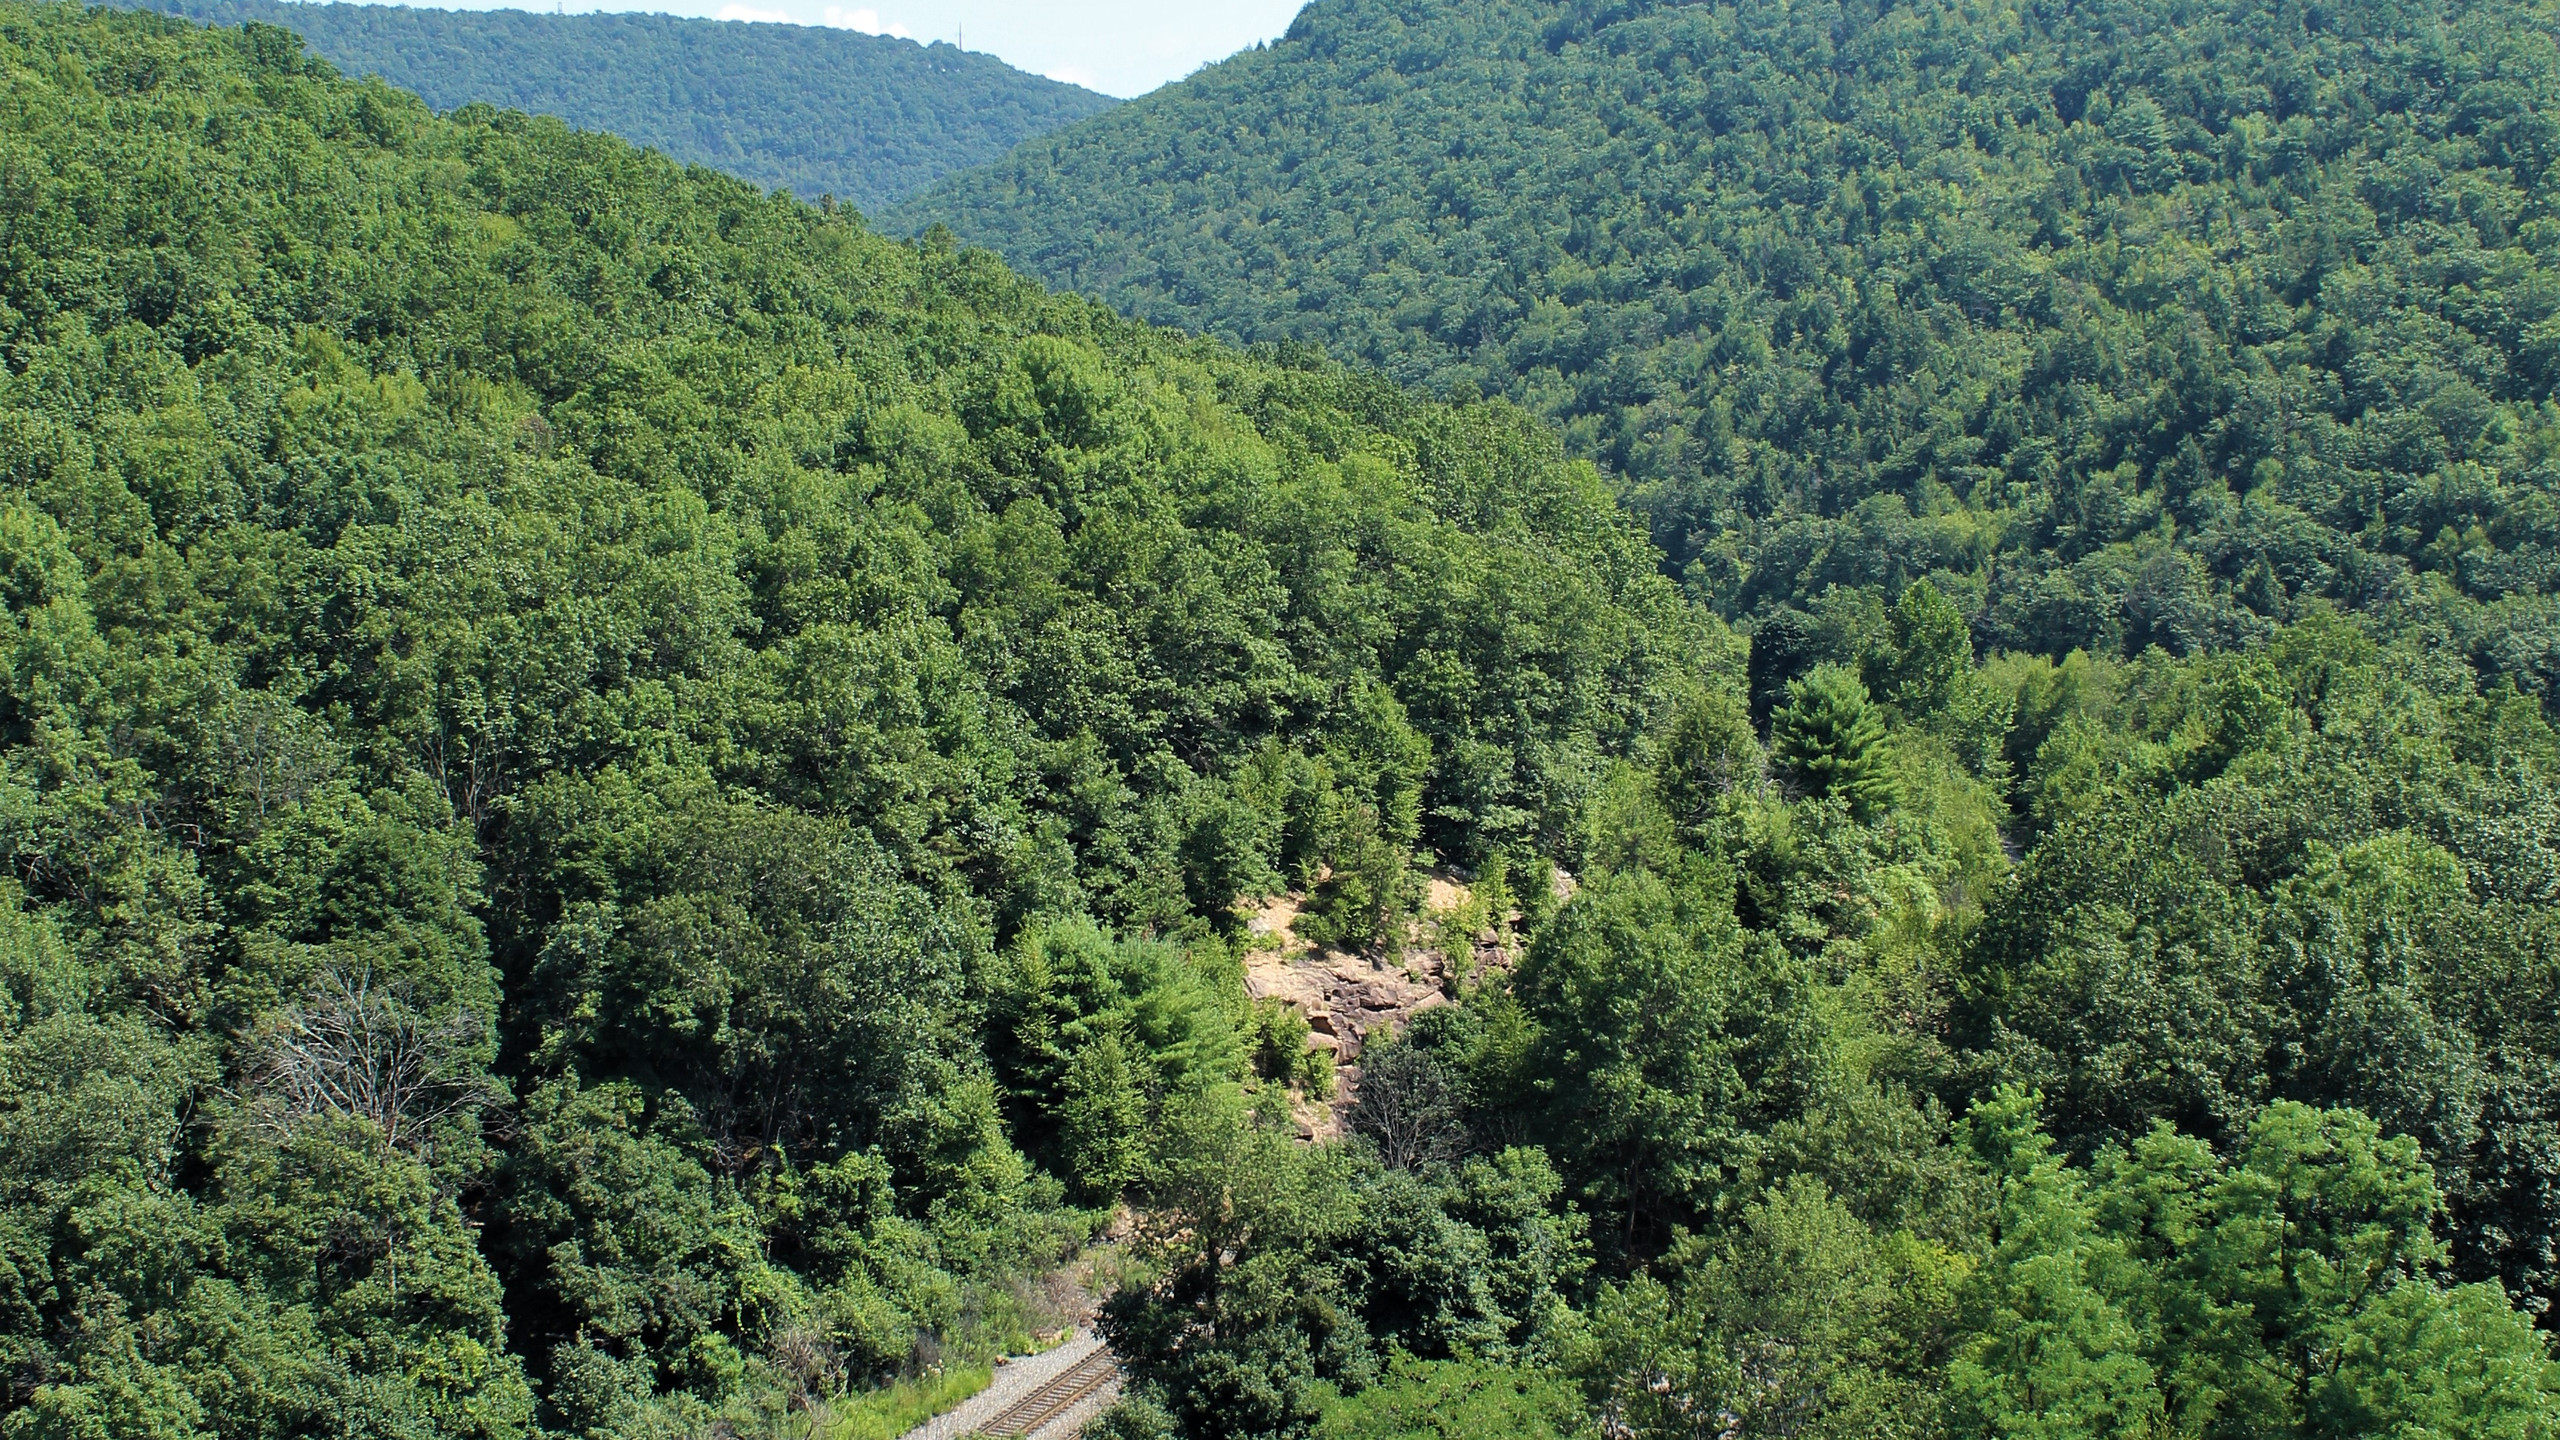 Overlook at Turn Hole Tunnel